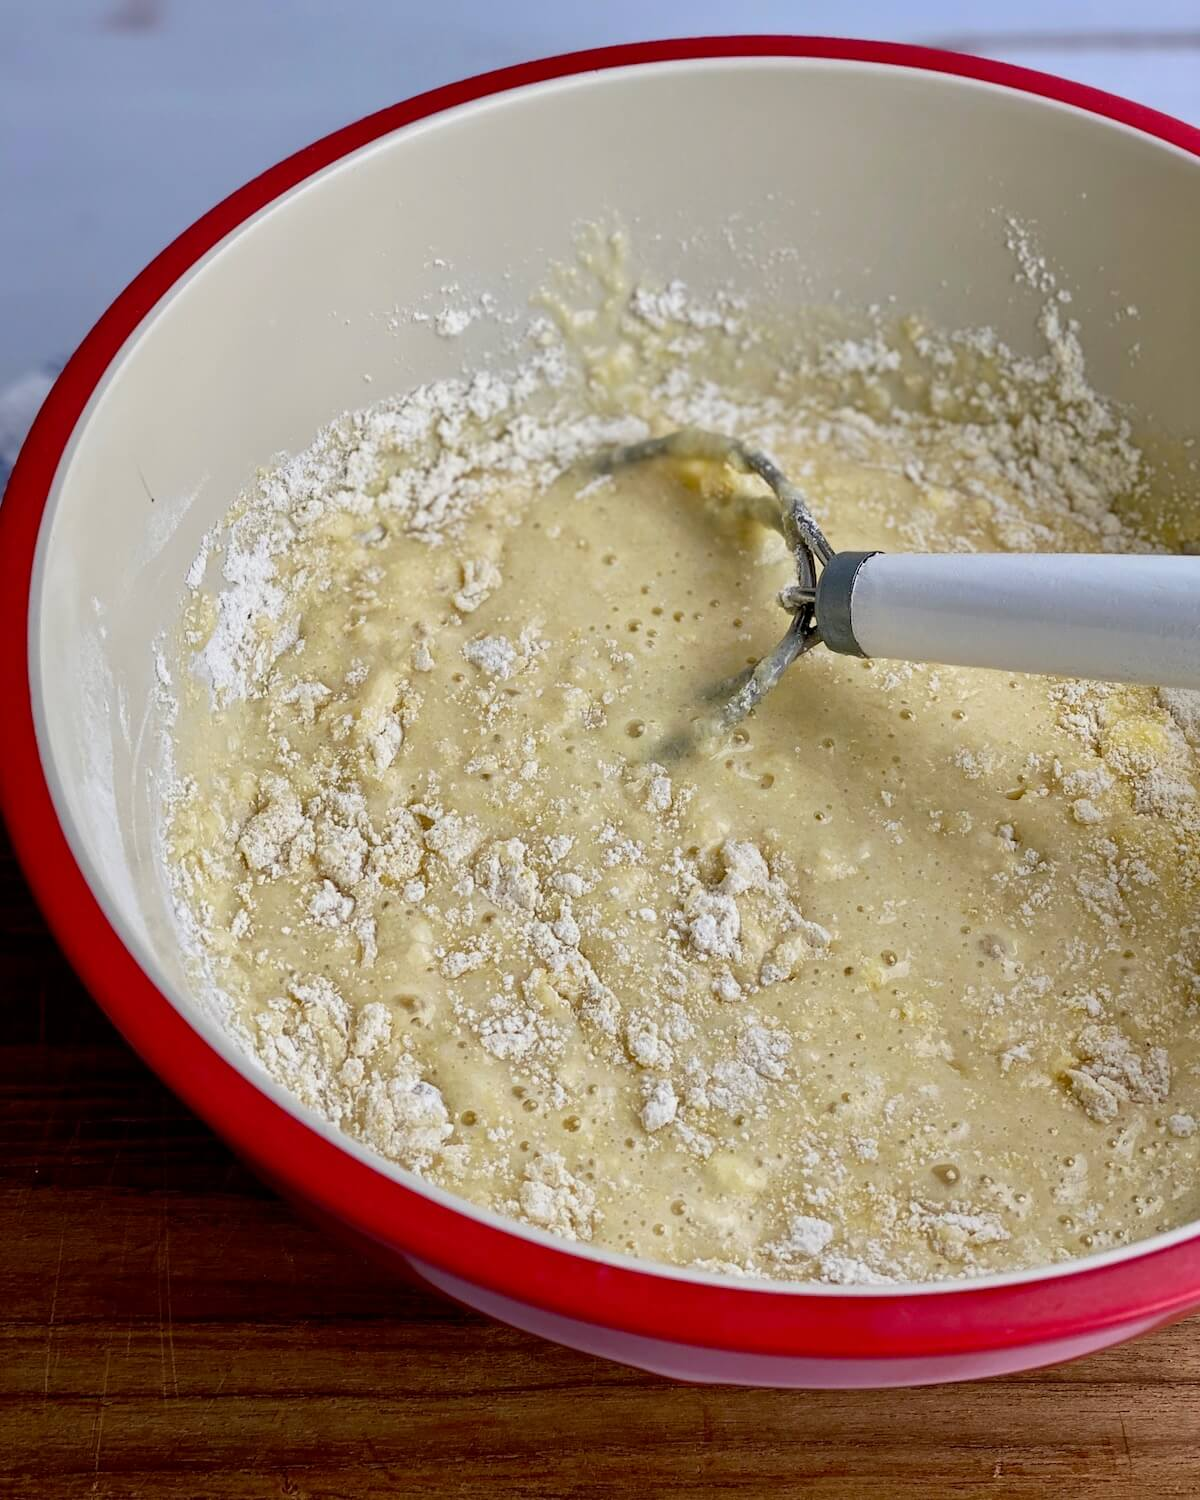 cornbread batter in red bowl